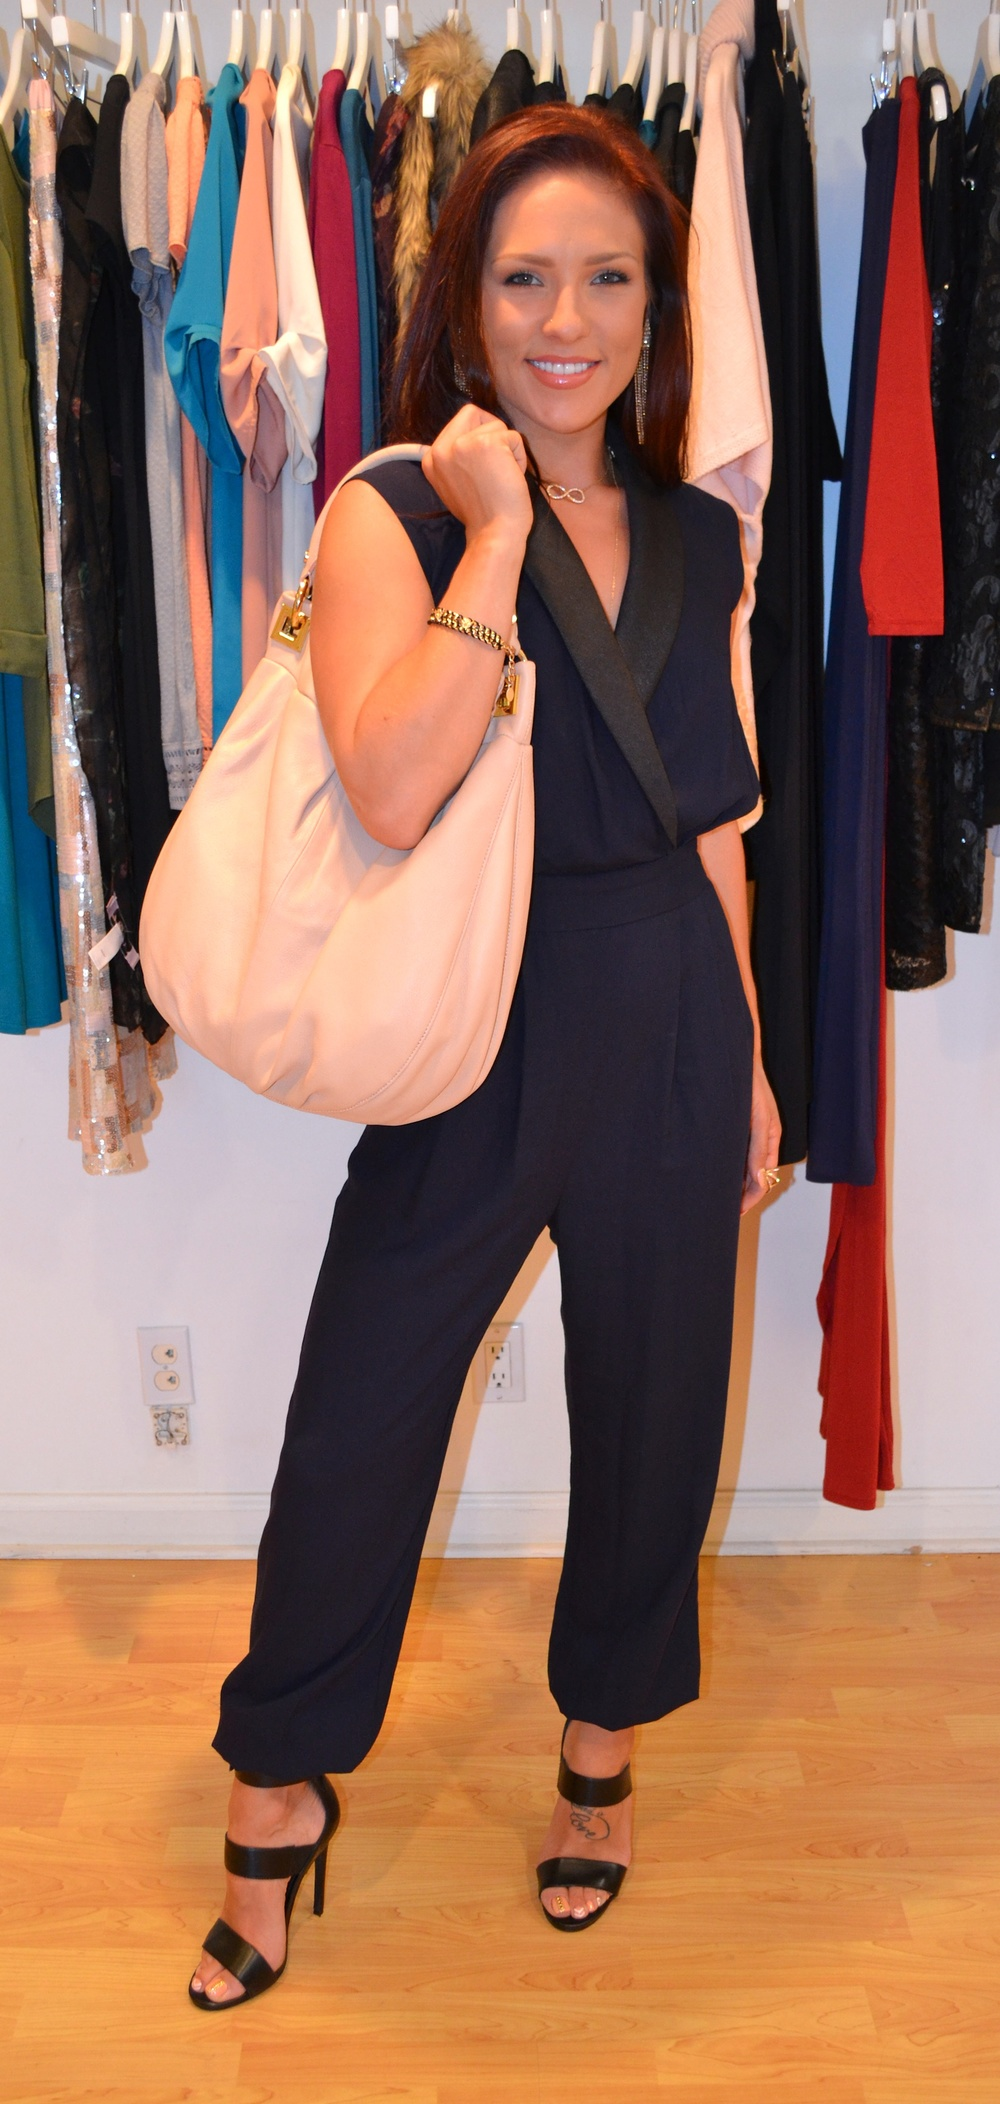 Ali Landry and Sharna Burgess sporting the perfect summer accessory Emma & Sophia Pebble Leather Satchel benefiting the Ovarian Cancer Research Fund duringQVCPresents SuperSaturdayLIVE onJuly 26th at 2pm EST (Photo:Brenda Souza)